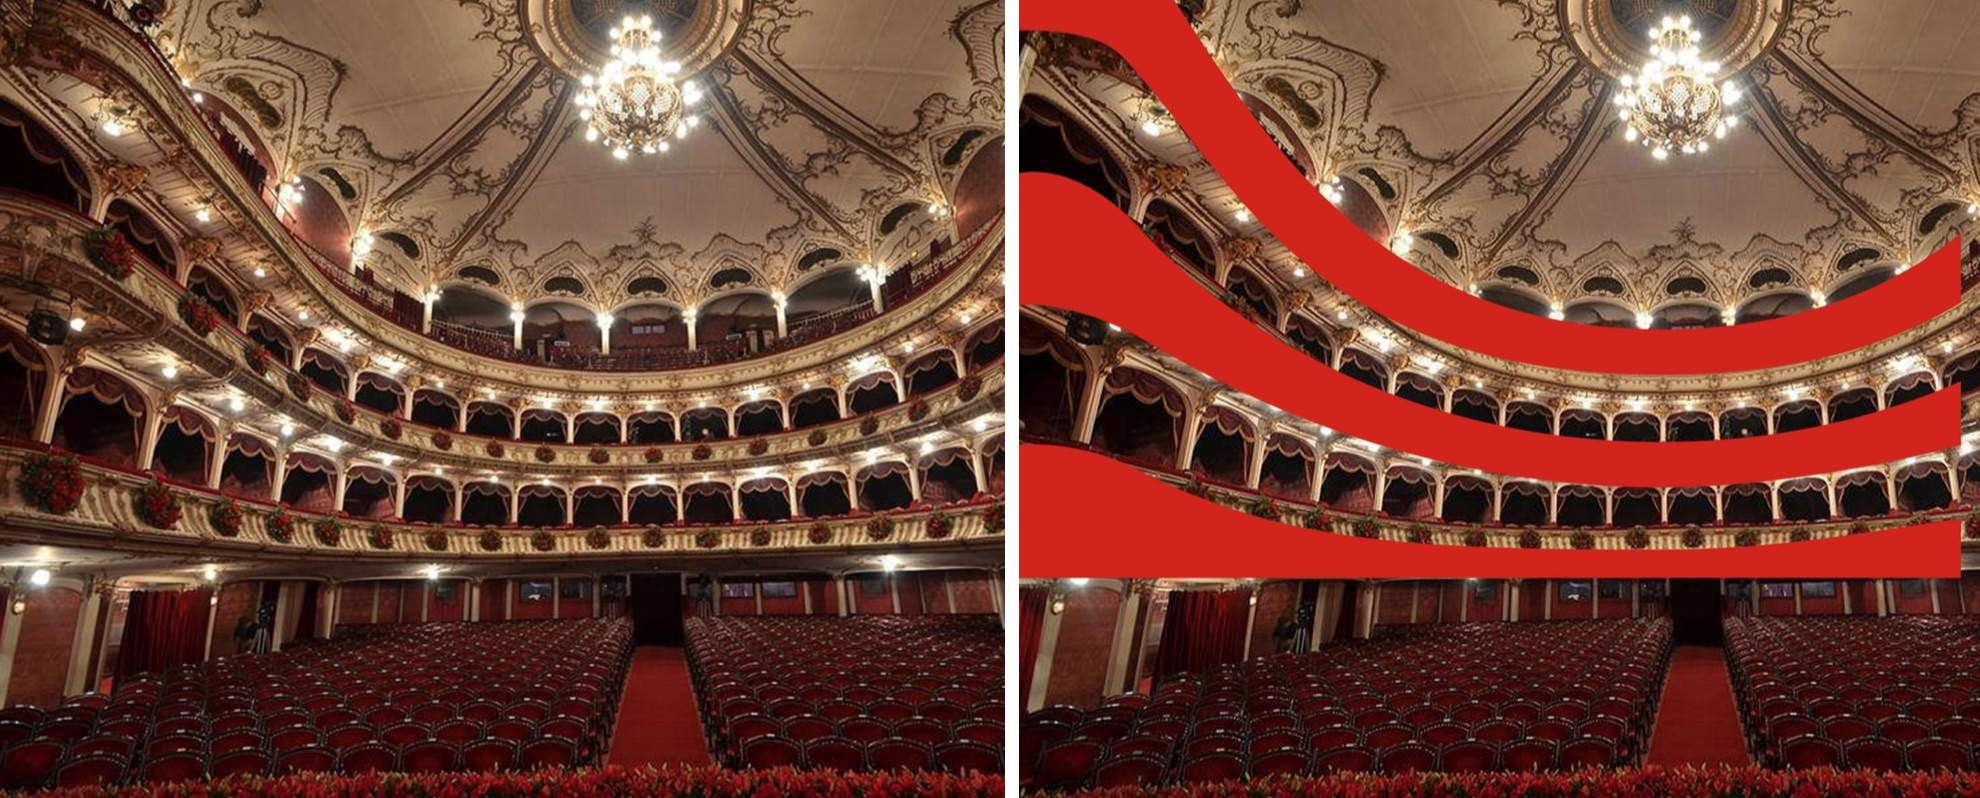 Although most cultural institutions use a representation of the building as a logo,  Heraldist  went the opposite way and designed a logo inspired by the interior of the building, capturing the subjective perspective of the artist, the perspective of the hall as seen from the stage